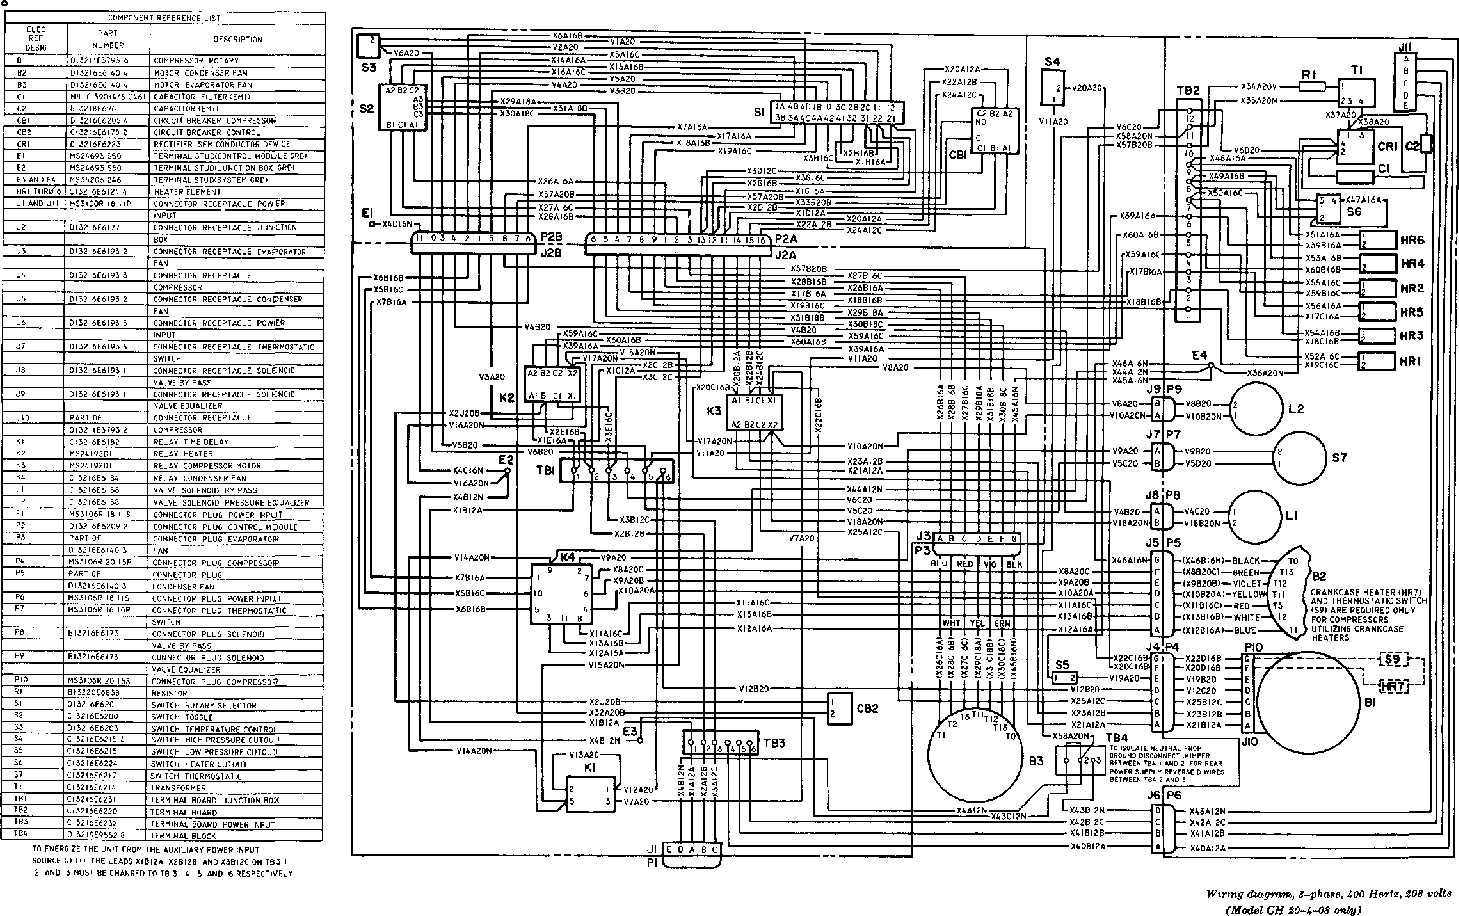 Figure 1 81 Wiring Diagram 3 Phase 400 Hertz 208 Volts Fundamentals Of House Pdf